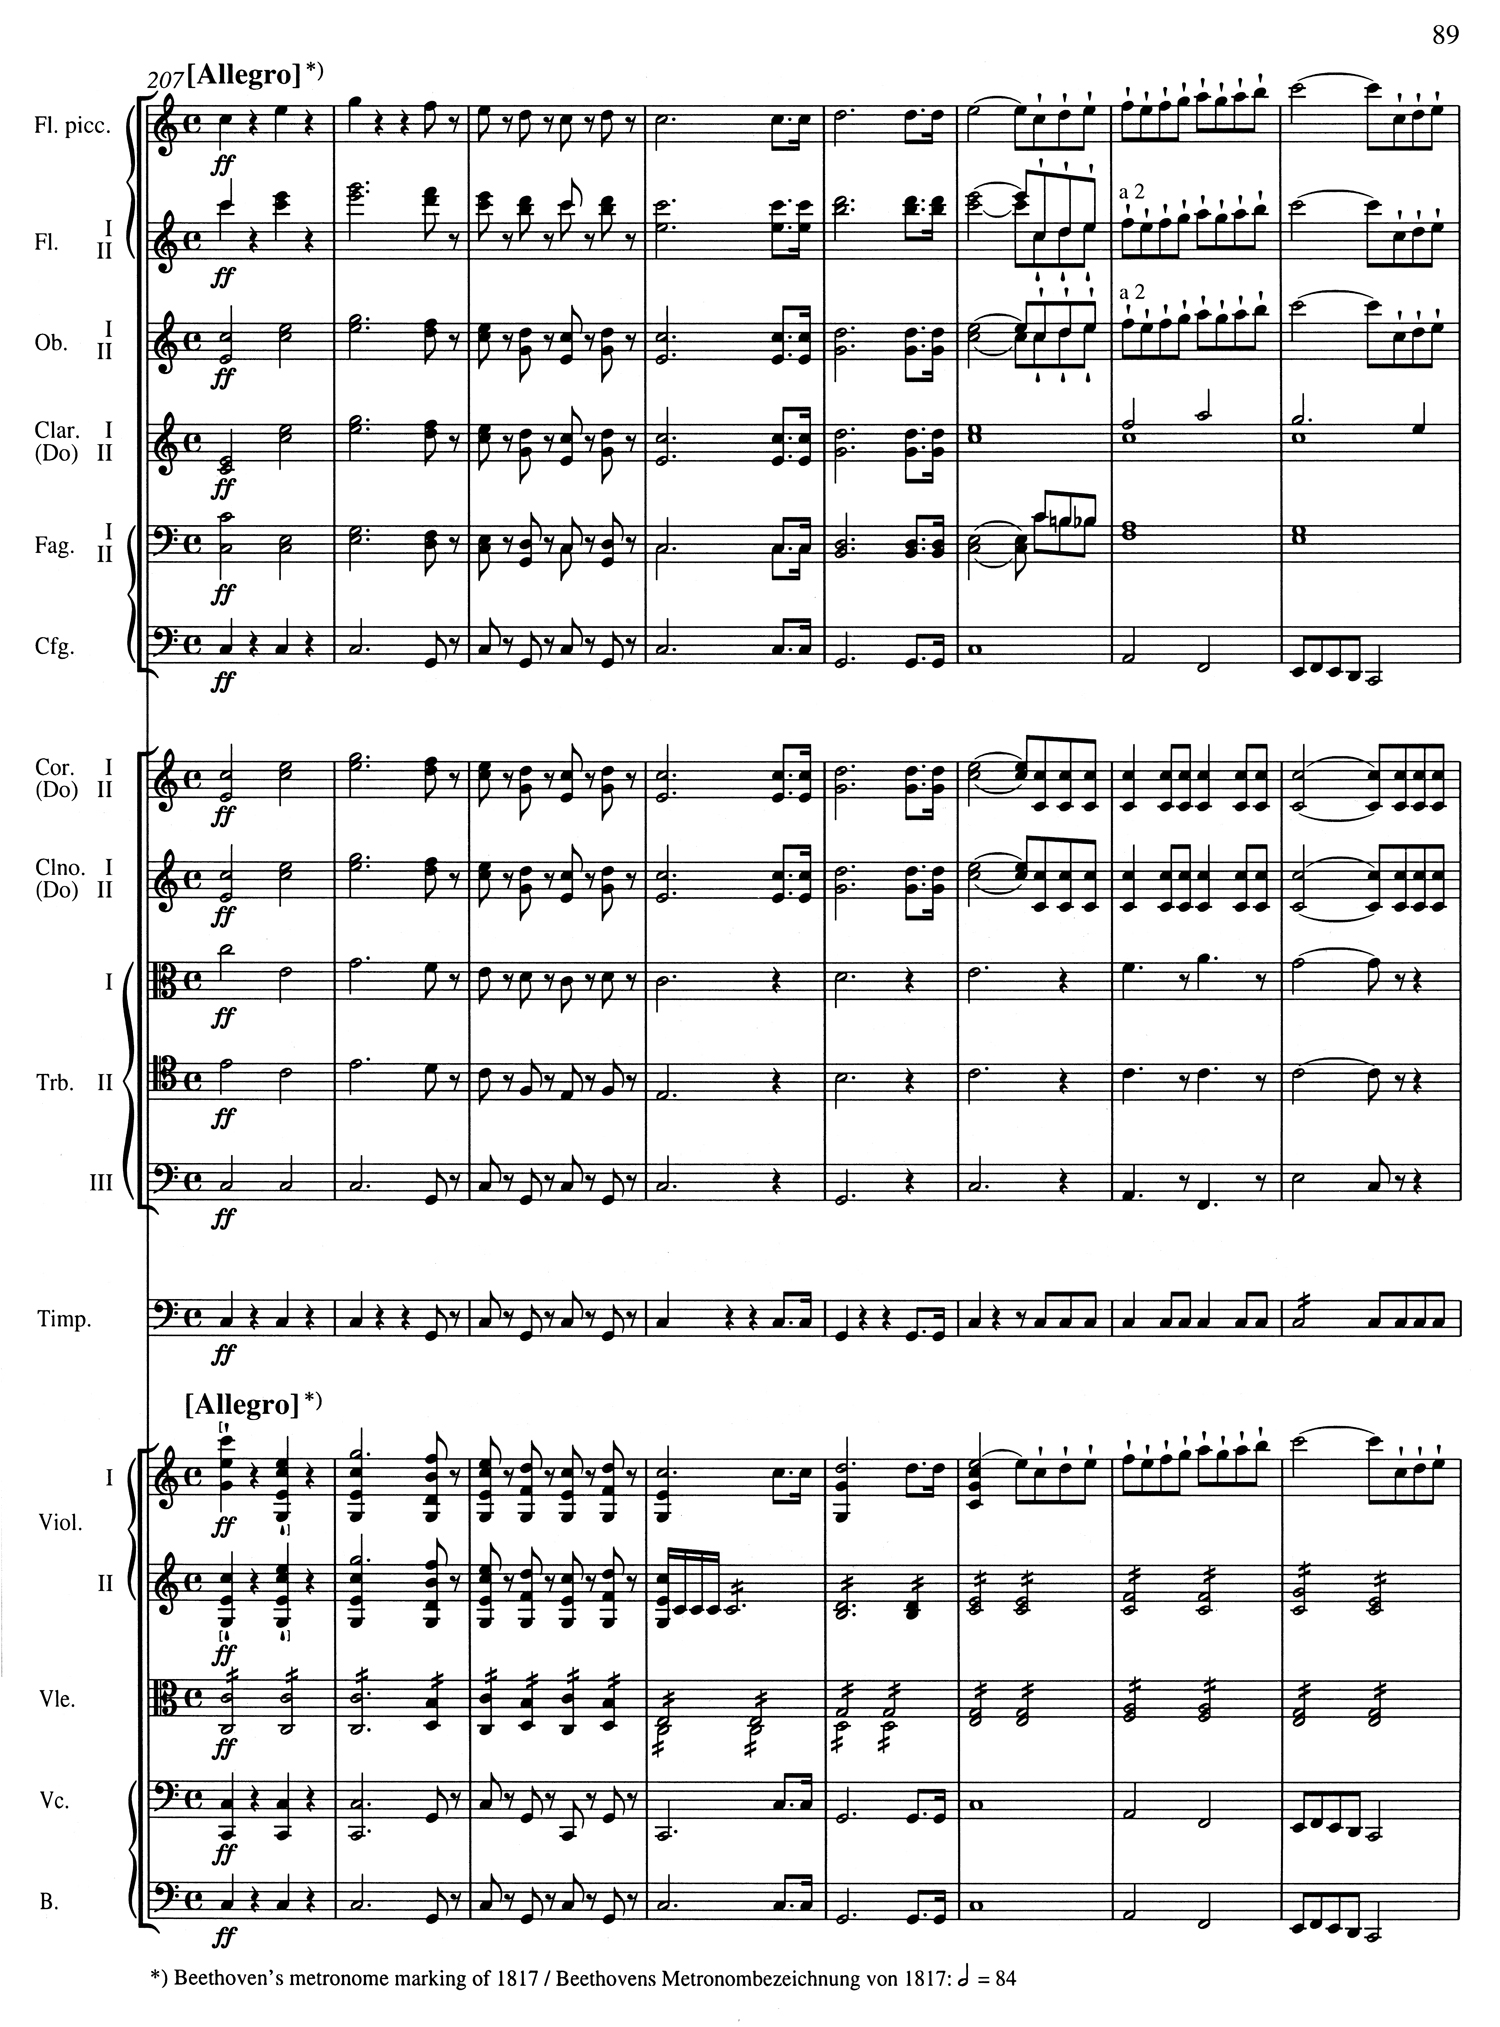 Beethoven 5 Score Page 1.jpg